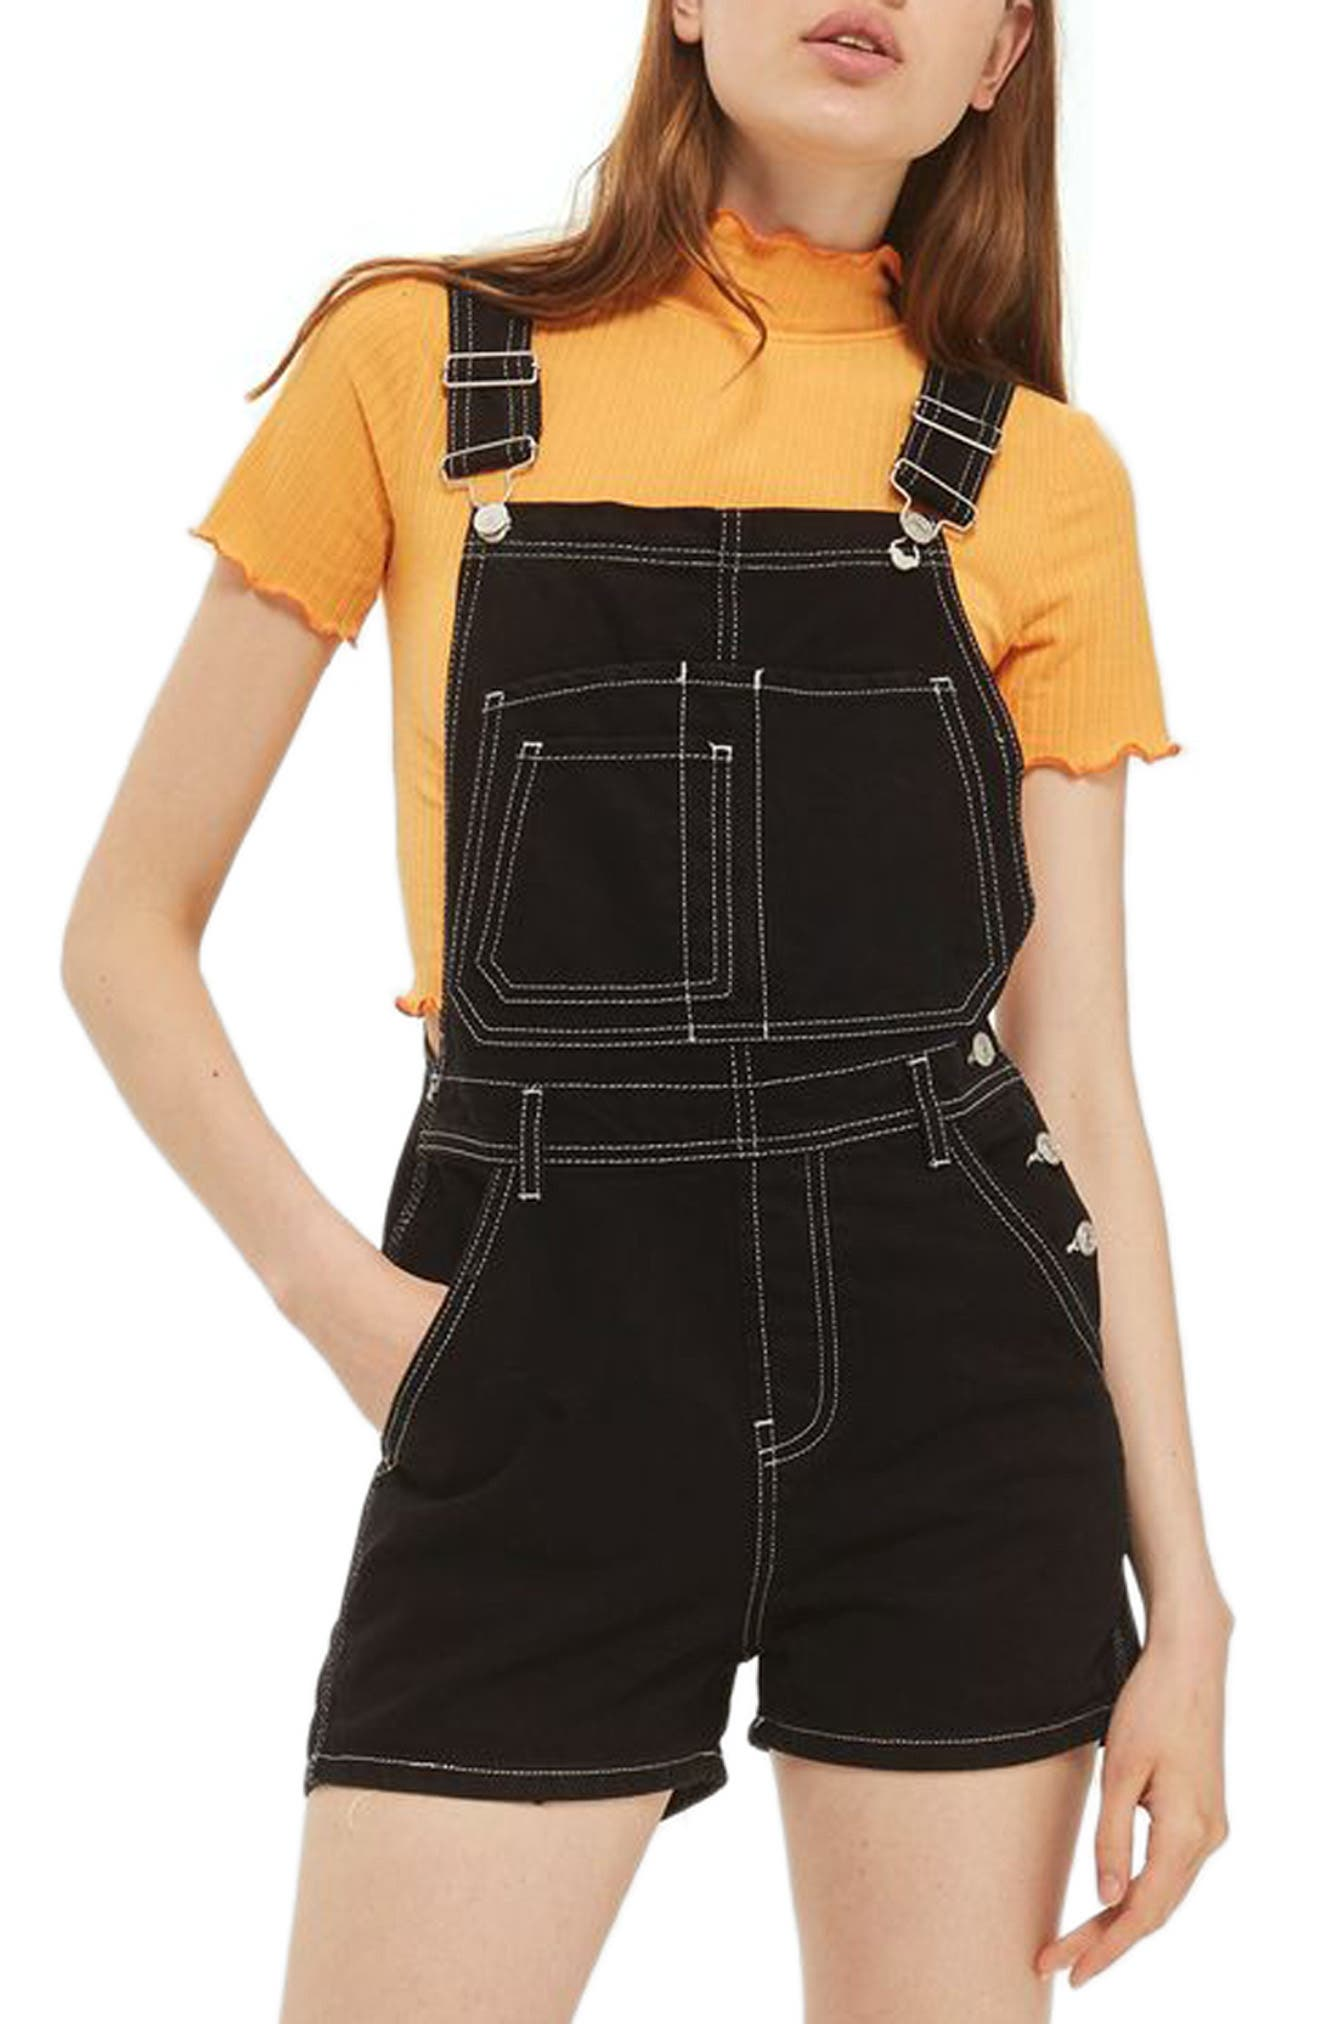 Topshop Contrast Stitch Short Overalls